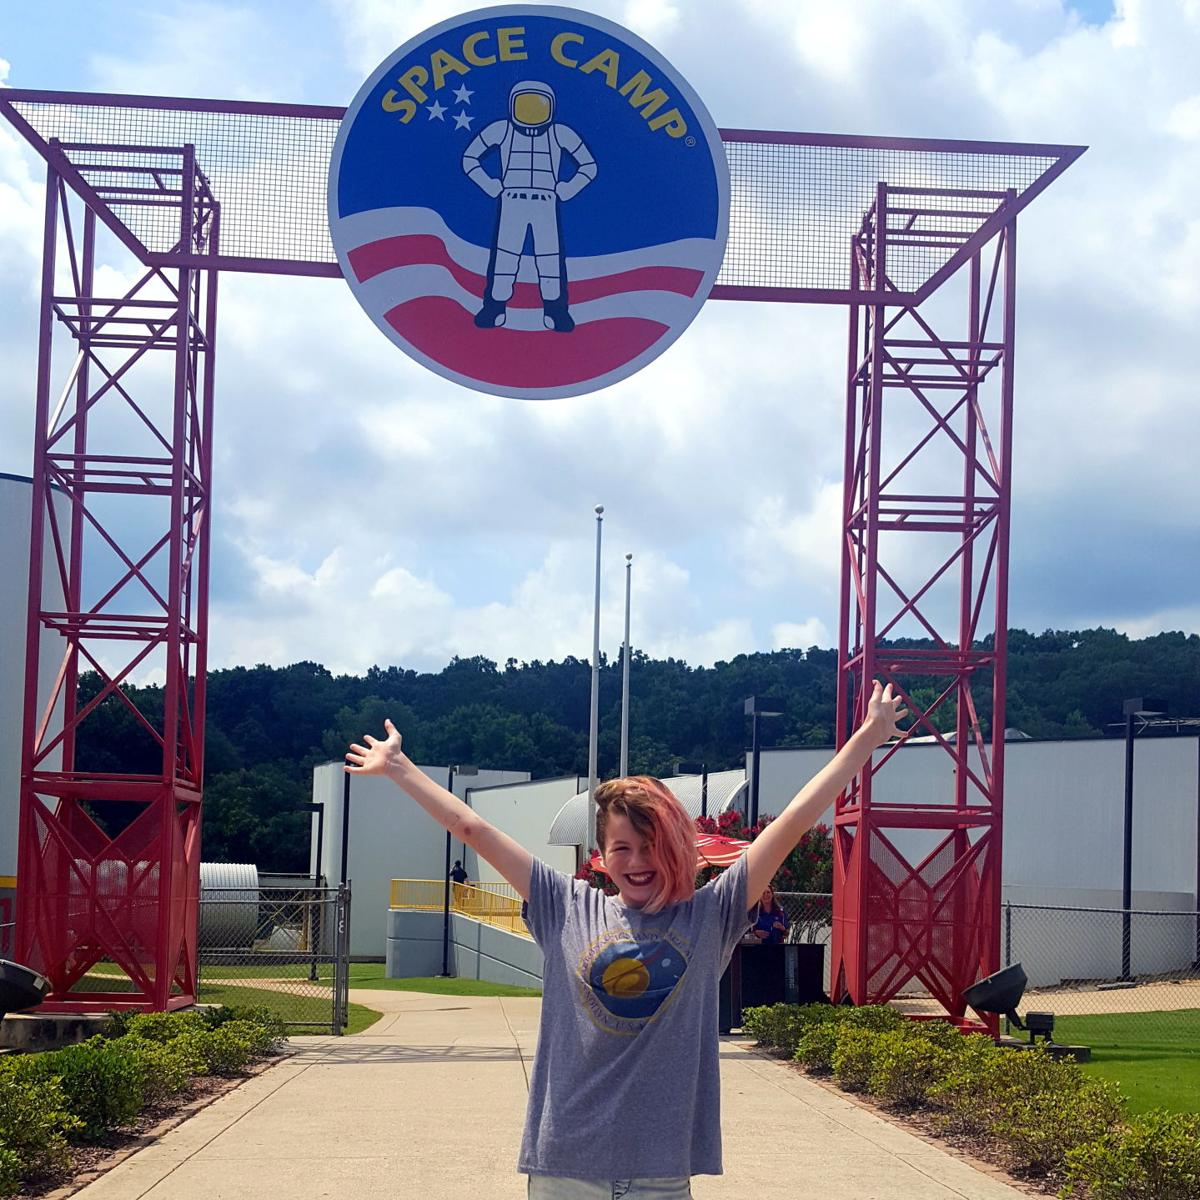 nasa space camp for adults